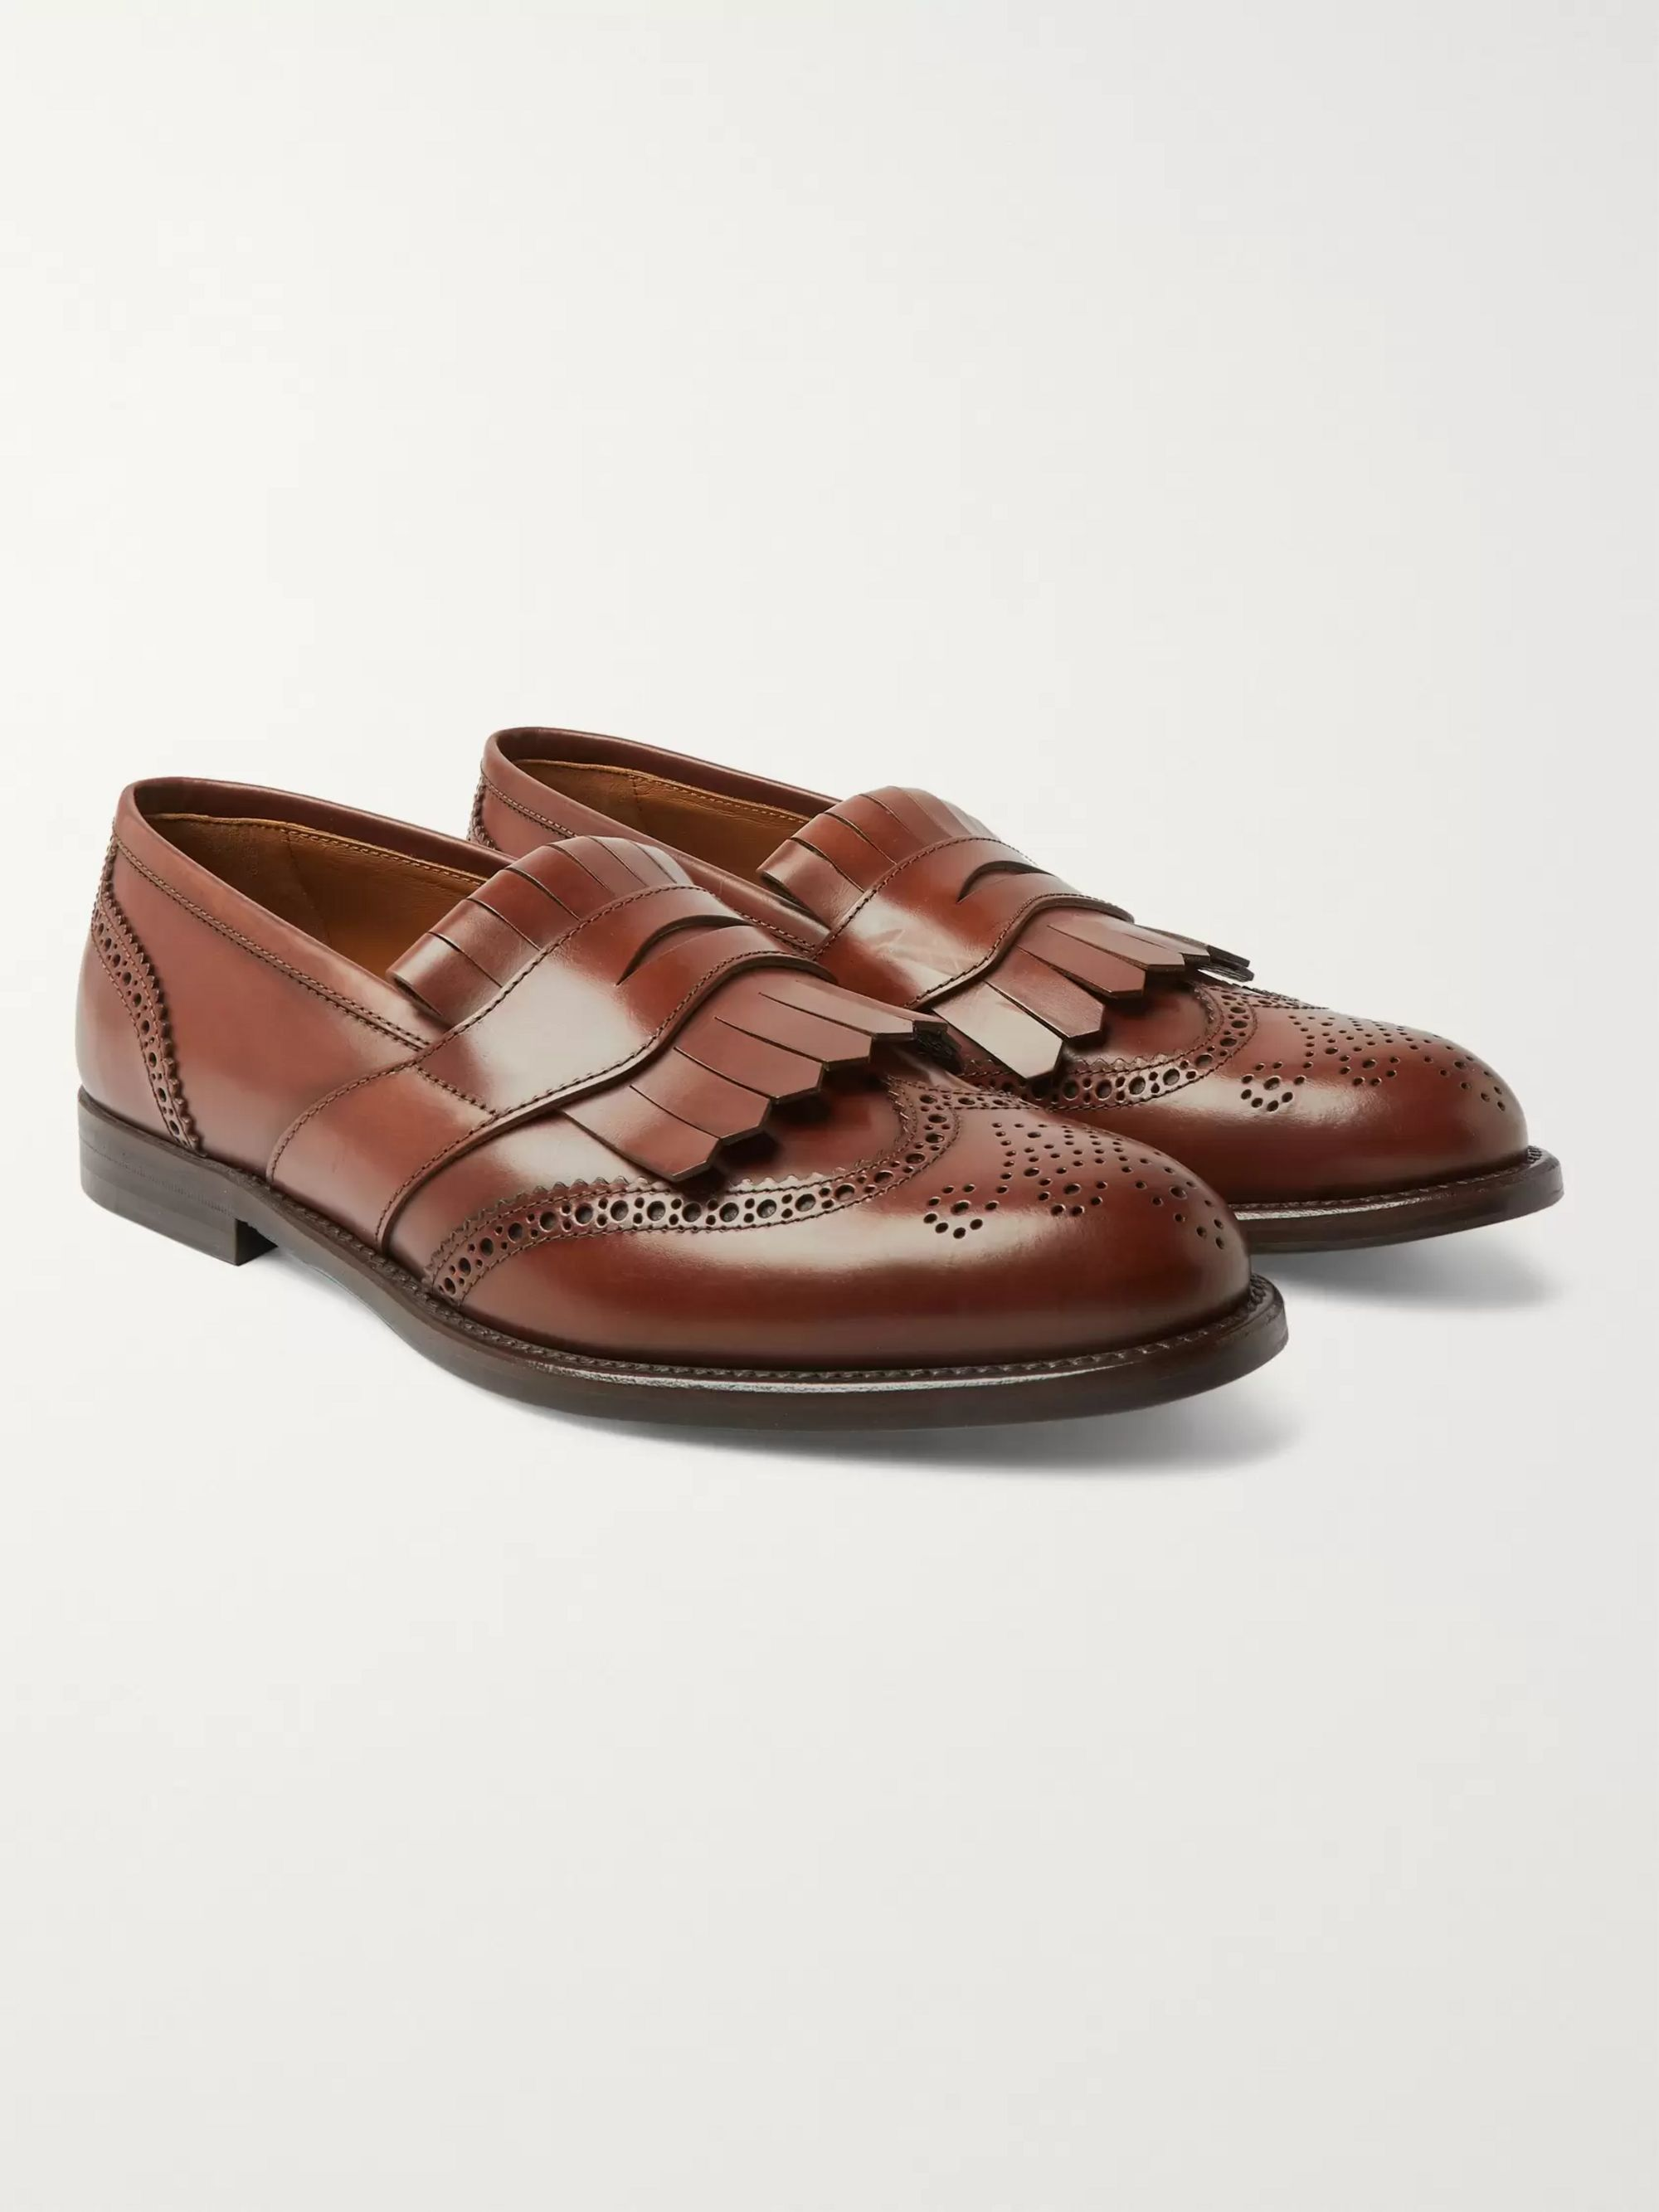 Brunello Cucinelli Brogue-Detailed Leather Kiltie Loafers